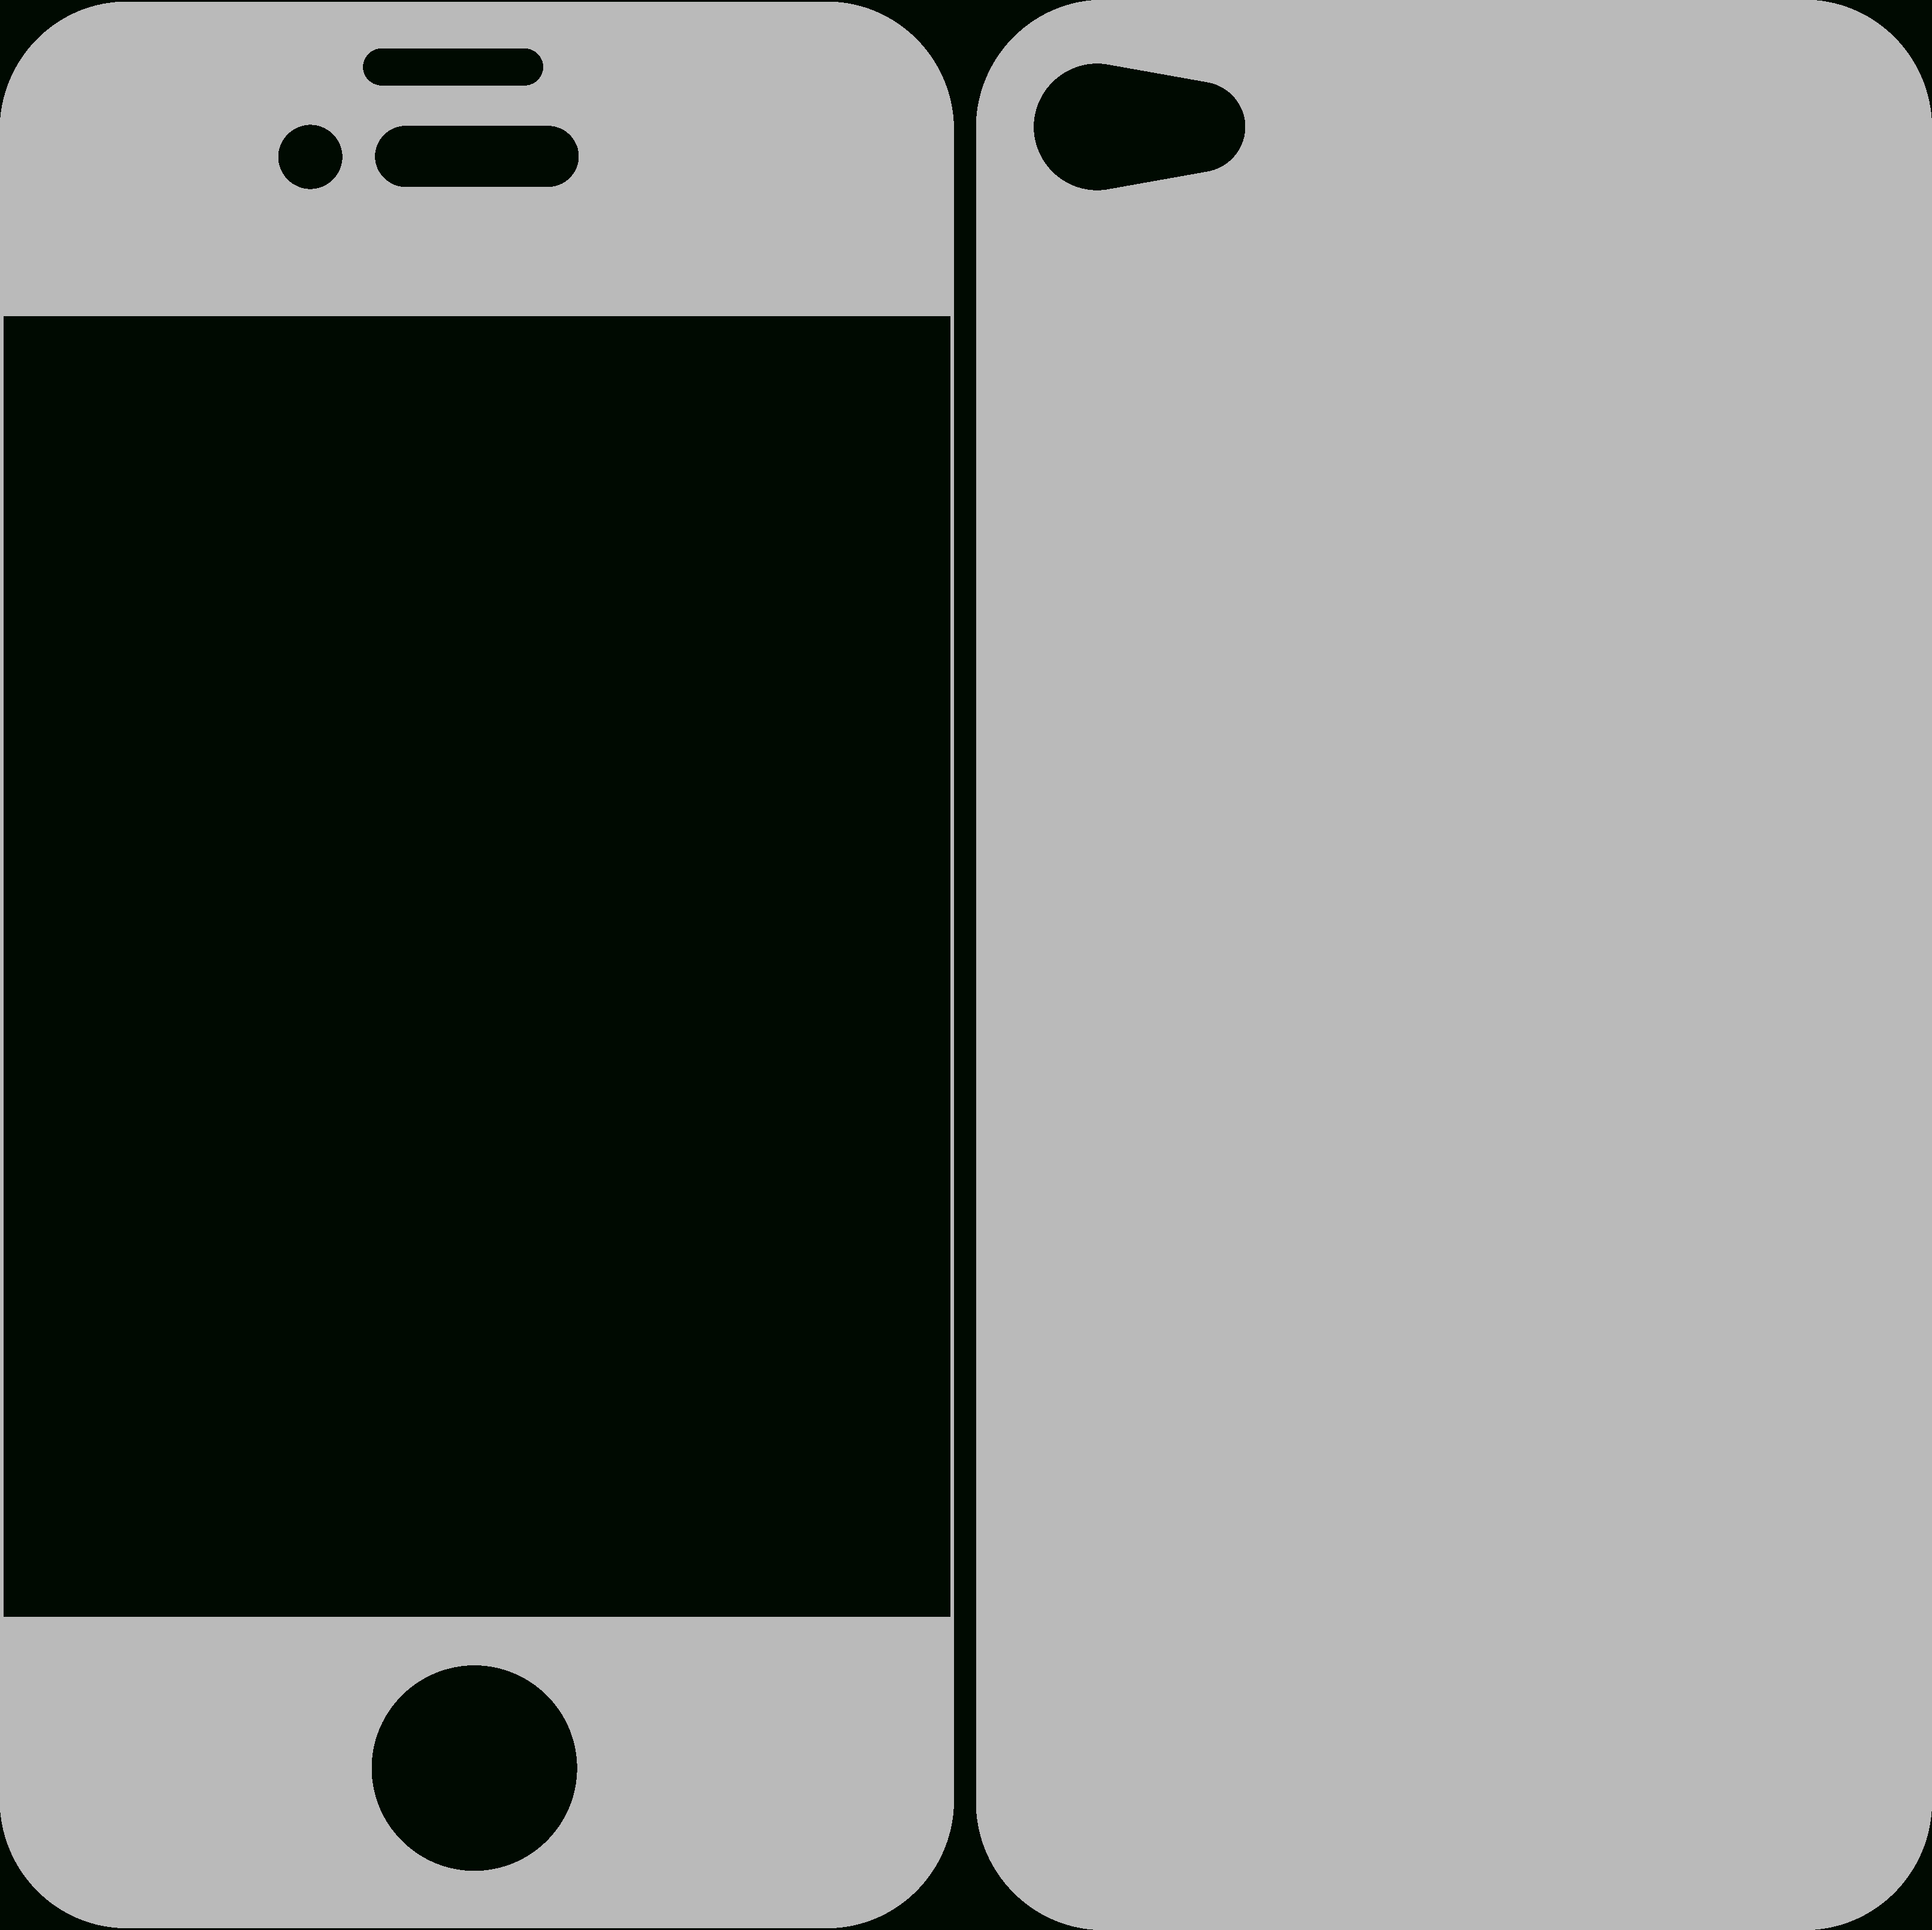 Free Iphone 6 Skin Template - Free Printable Iphone Skins